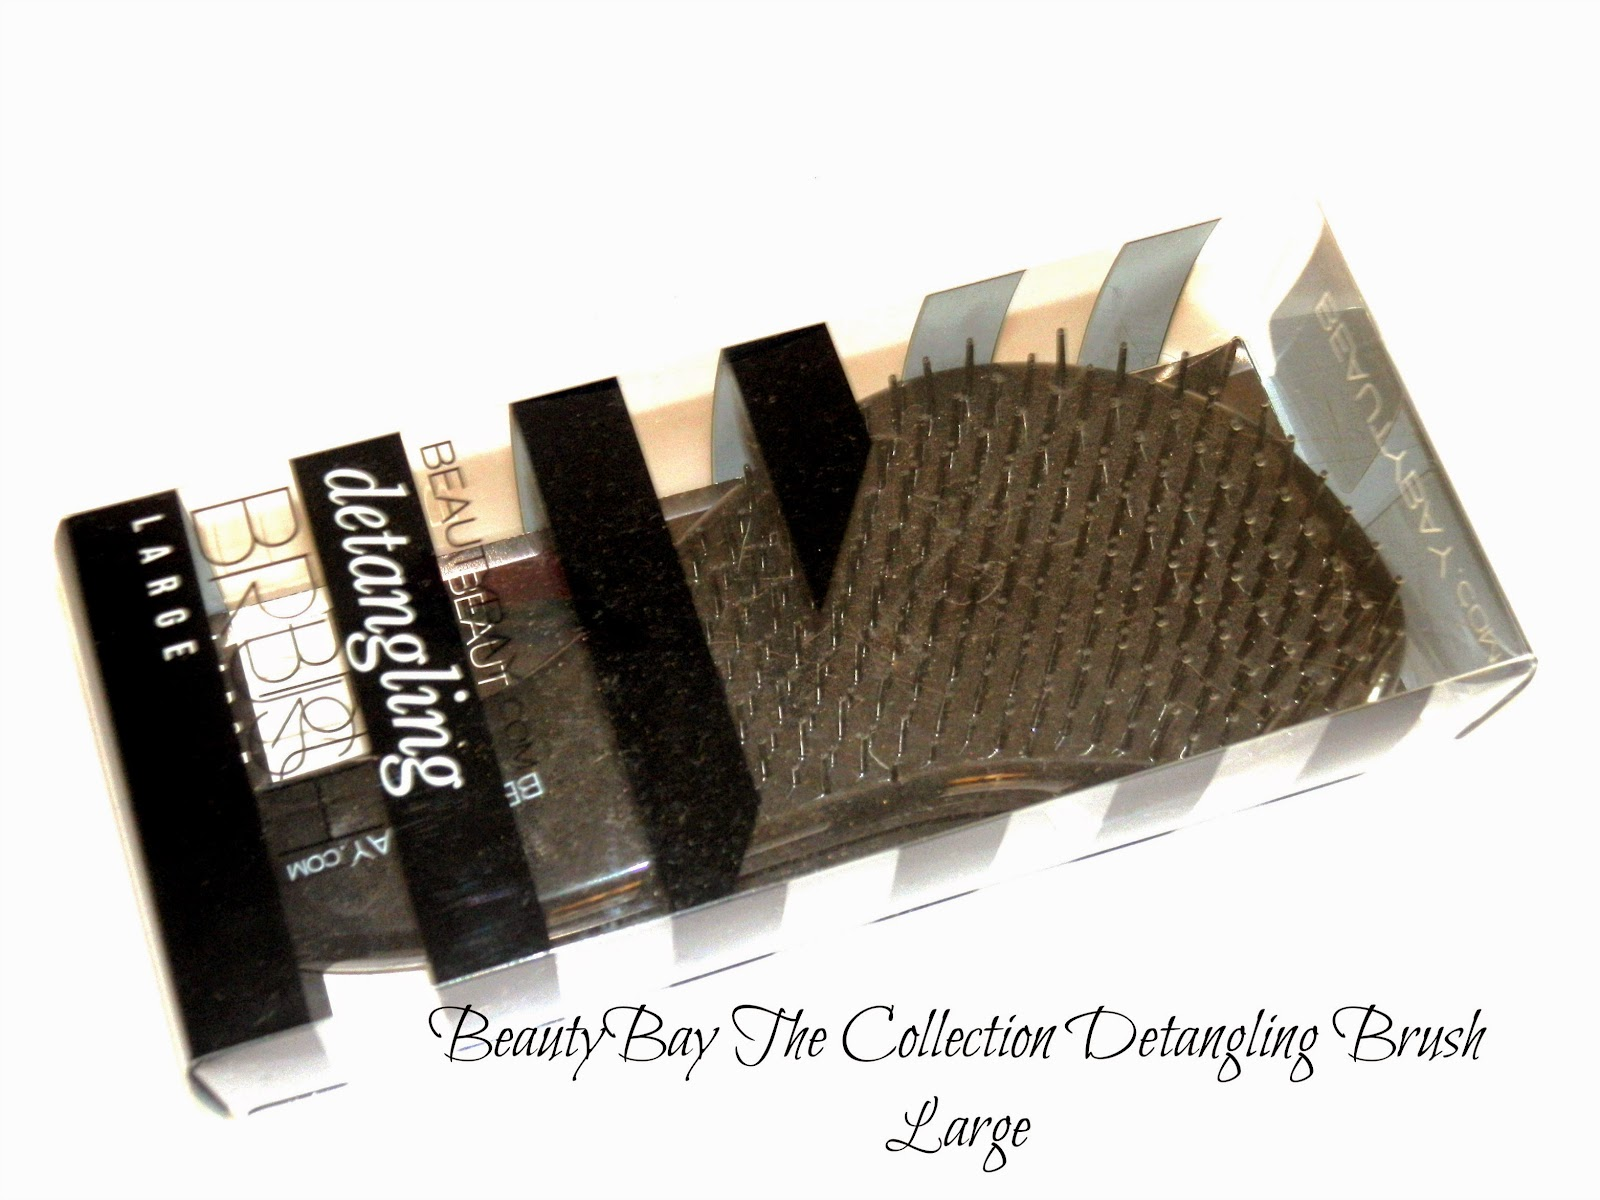 BeautyBay The Collection Detangling Brush Large Reviews